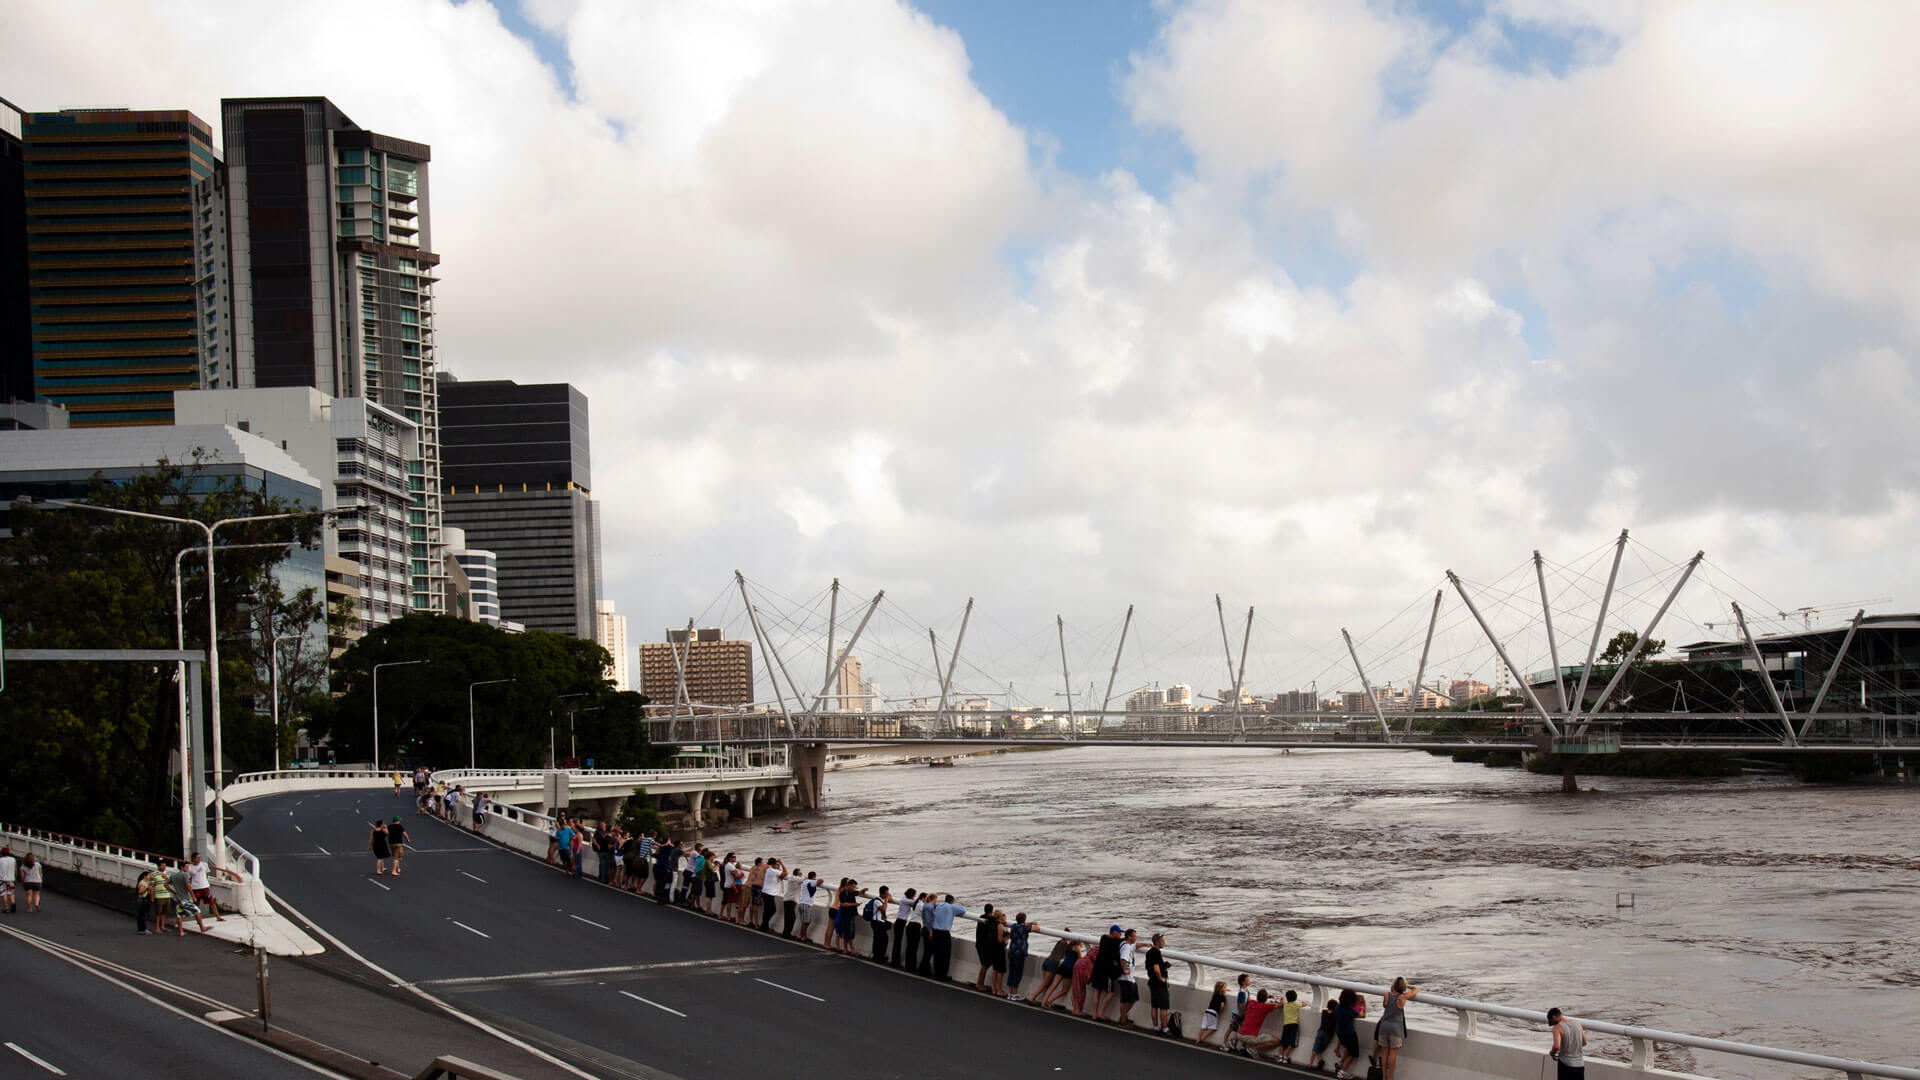 The Brisbane River flooded in January 2011, which caused widespread disruption to businesses, public services such as transport and energy supply and homes.